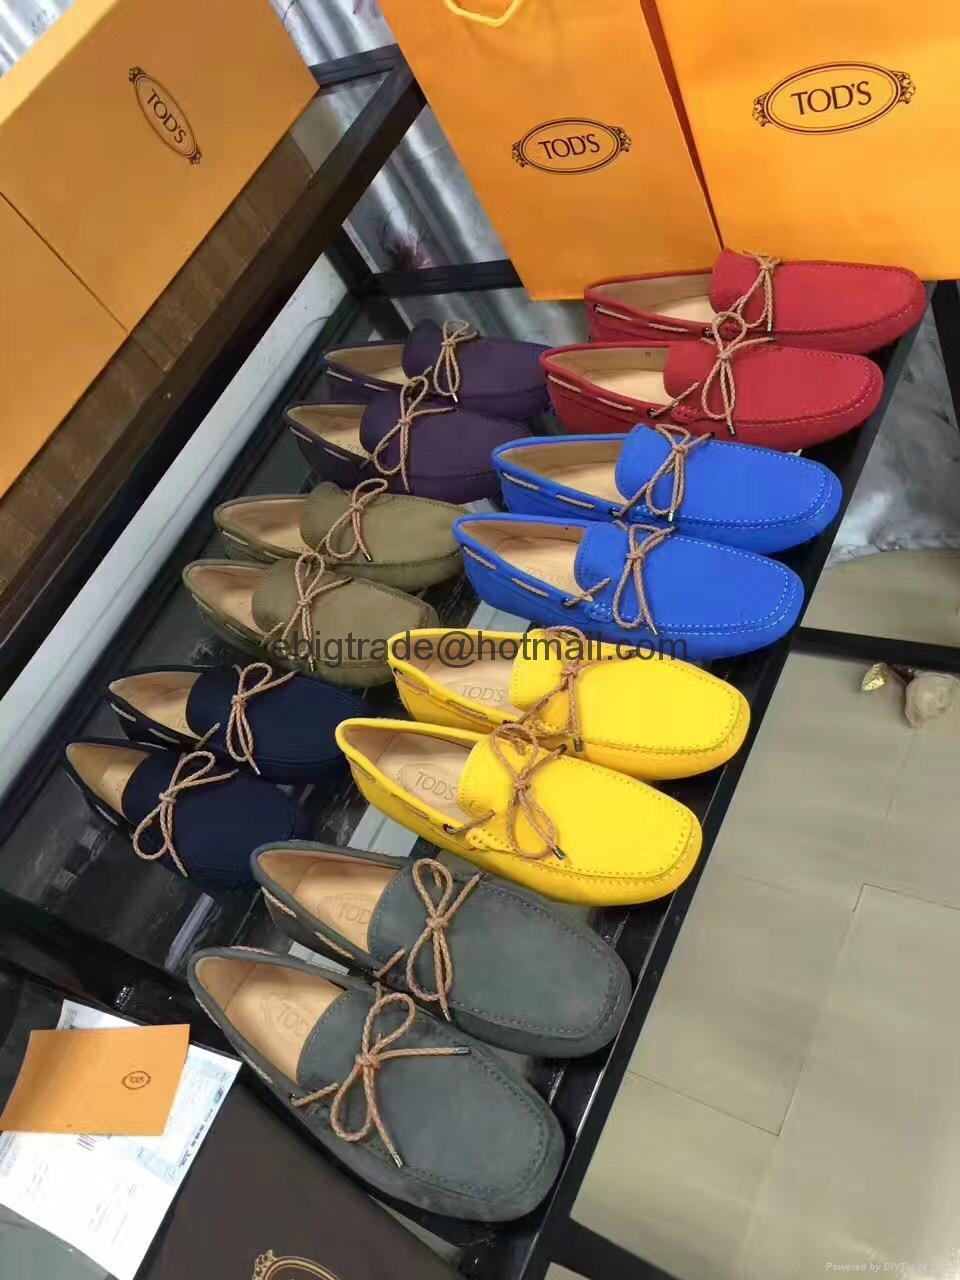 discount TOD'S shoes